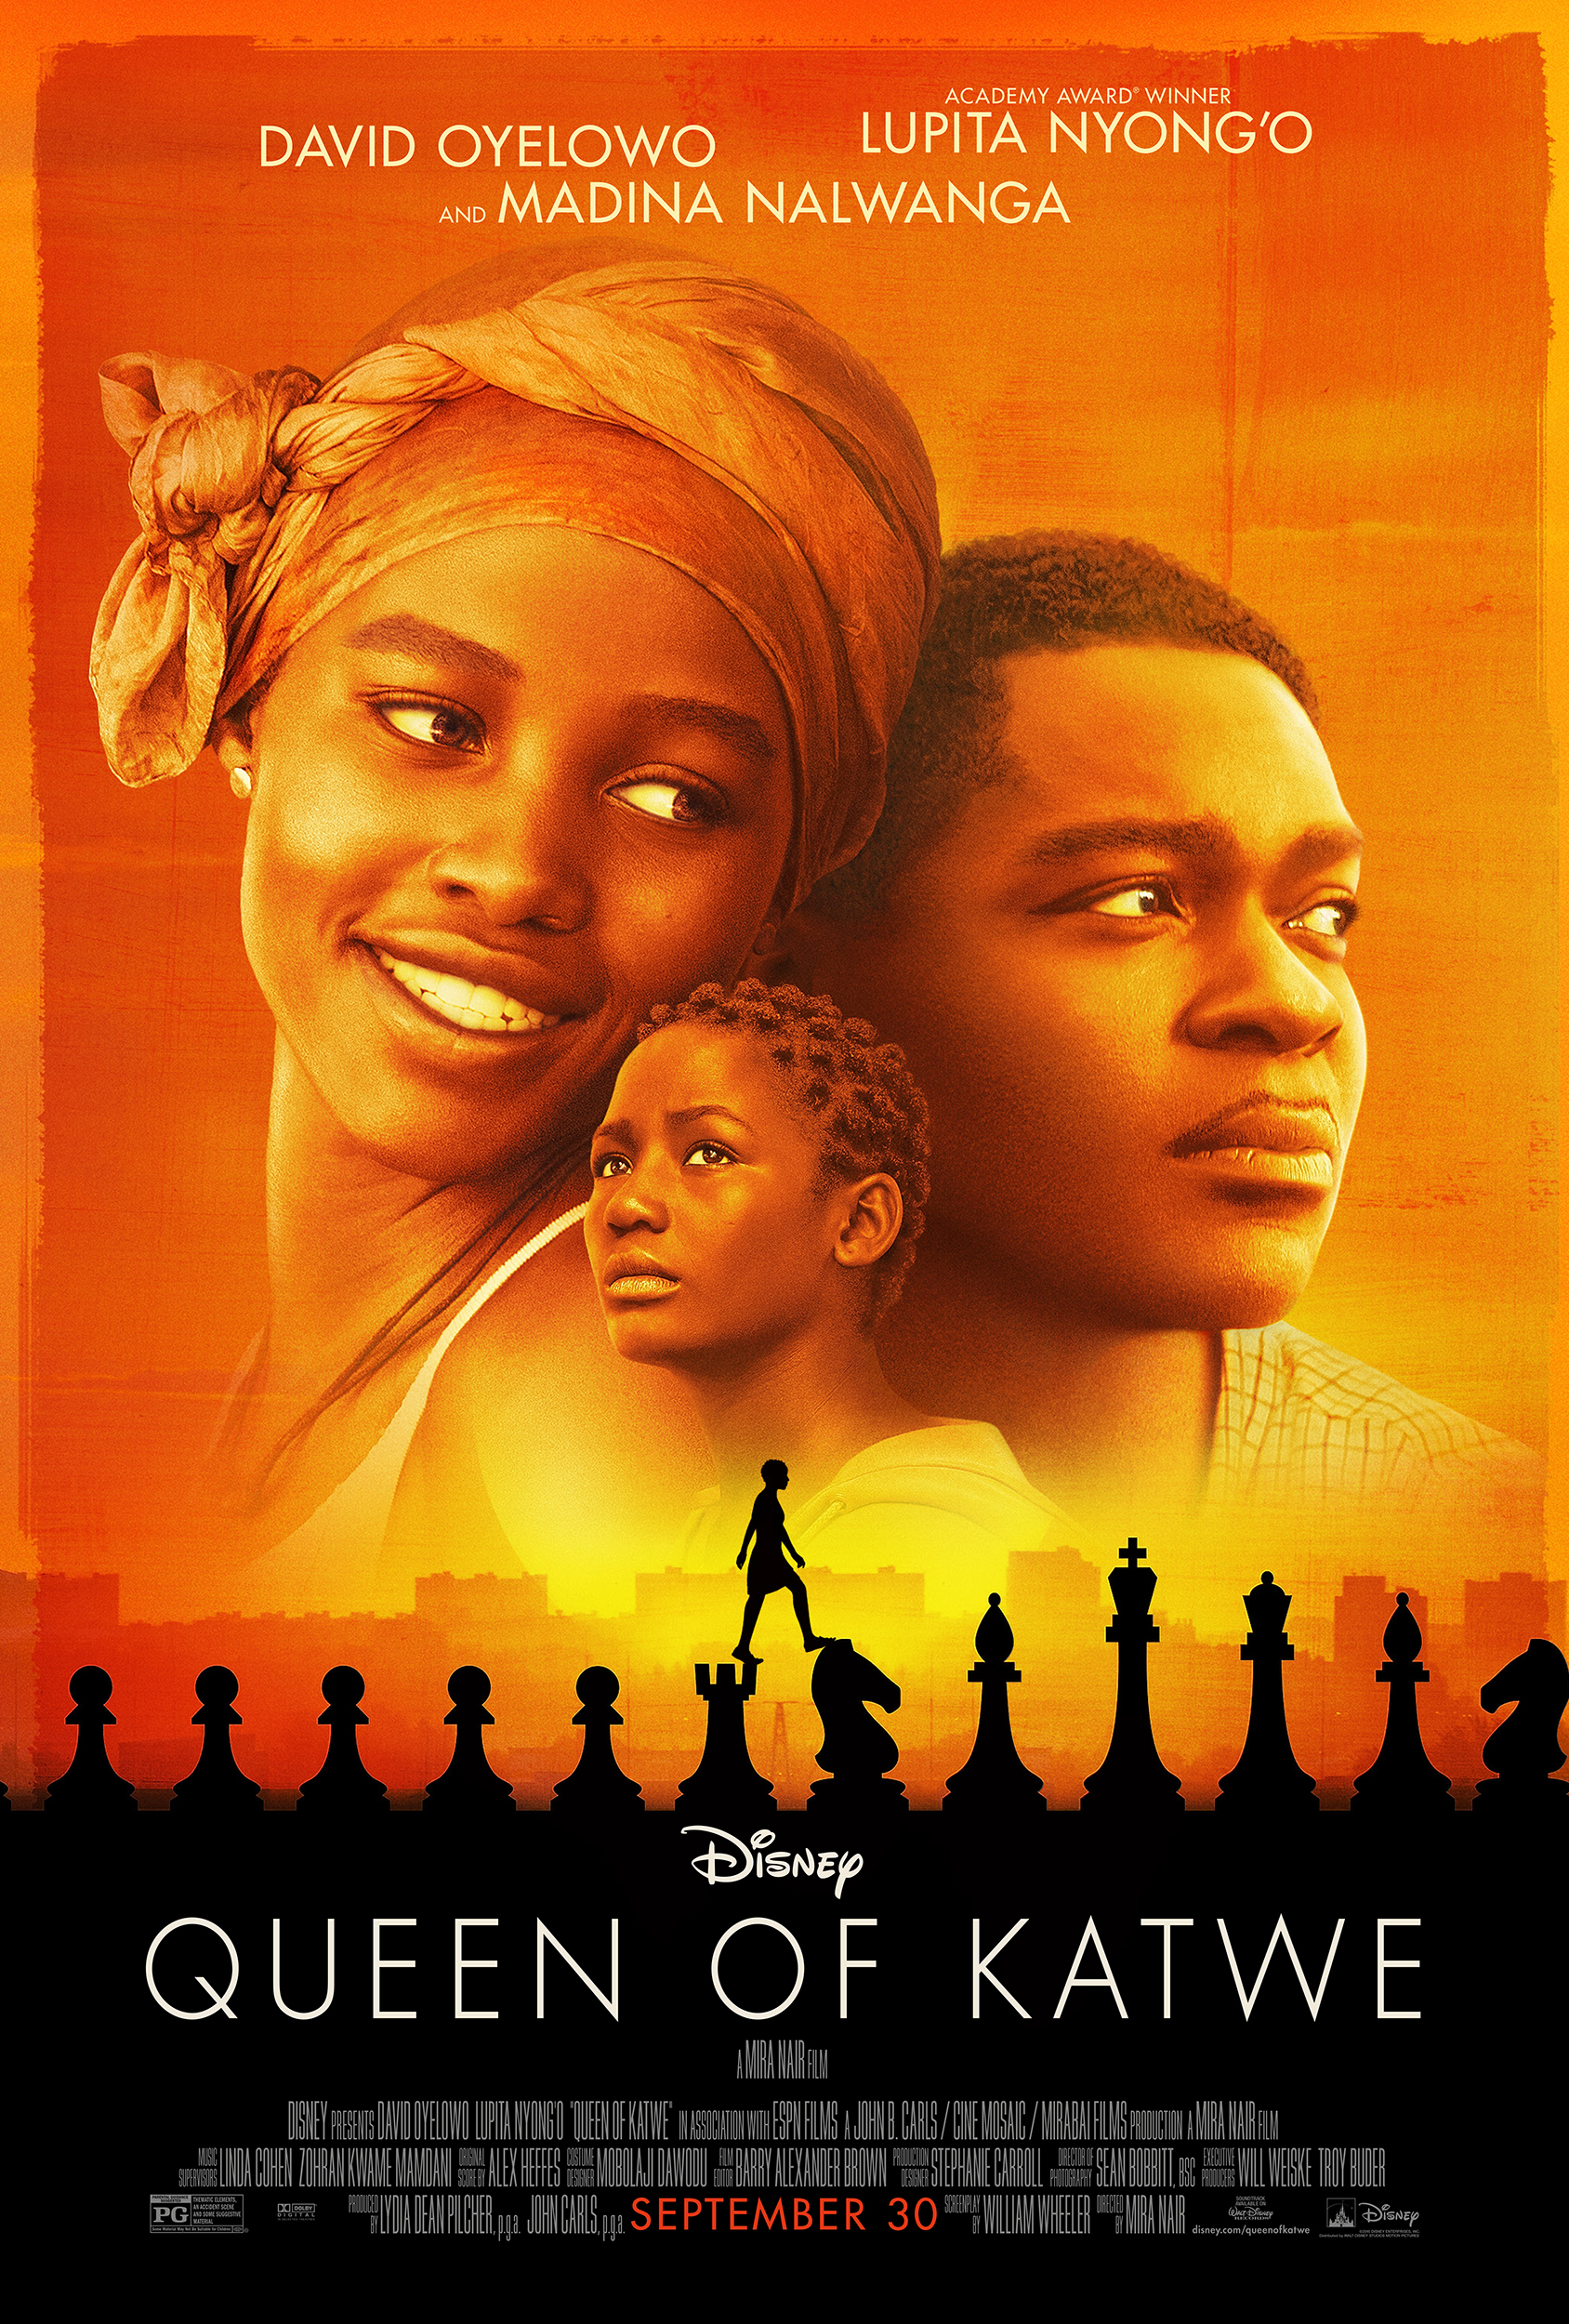 Queen of Katwe was beautiful, empowering, and inspirational.